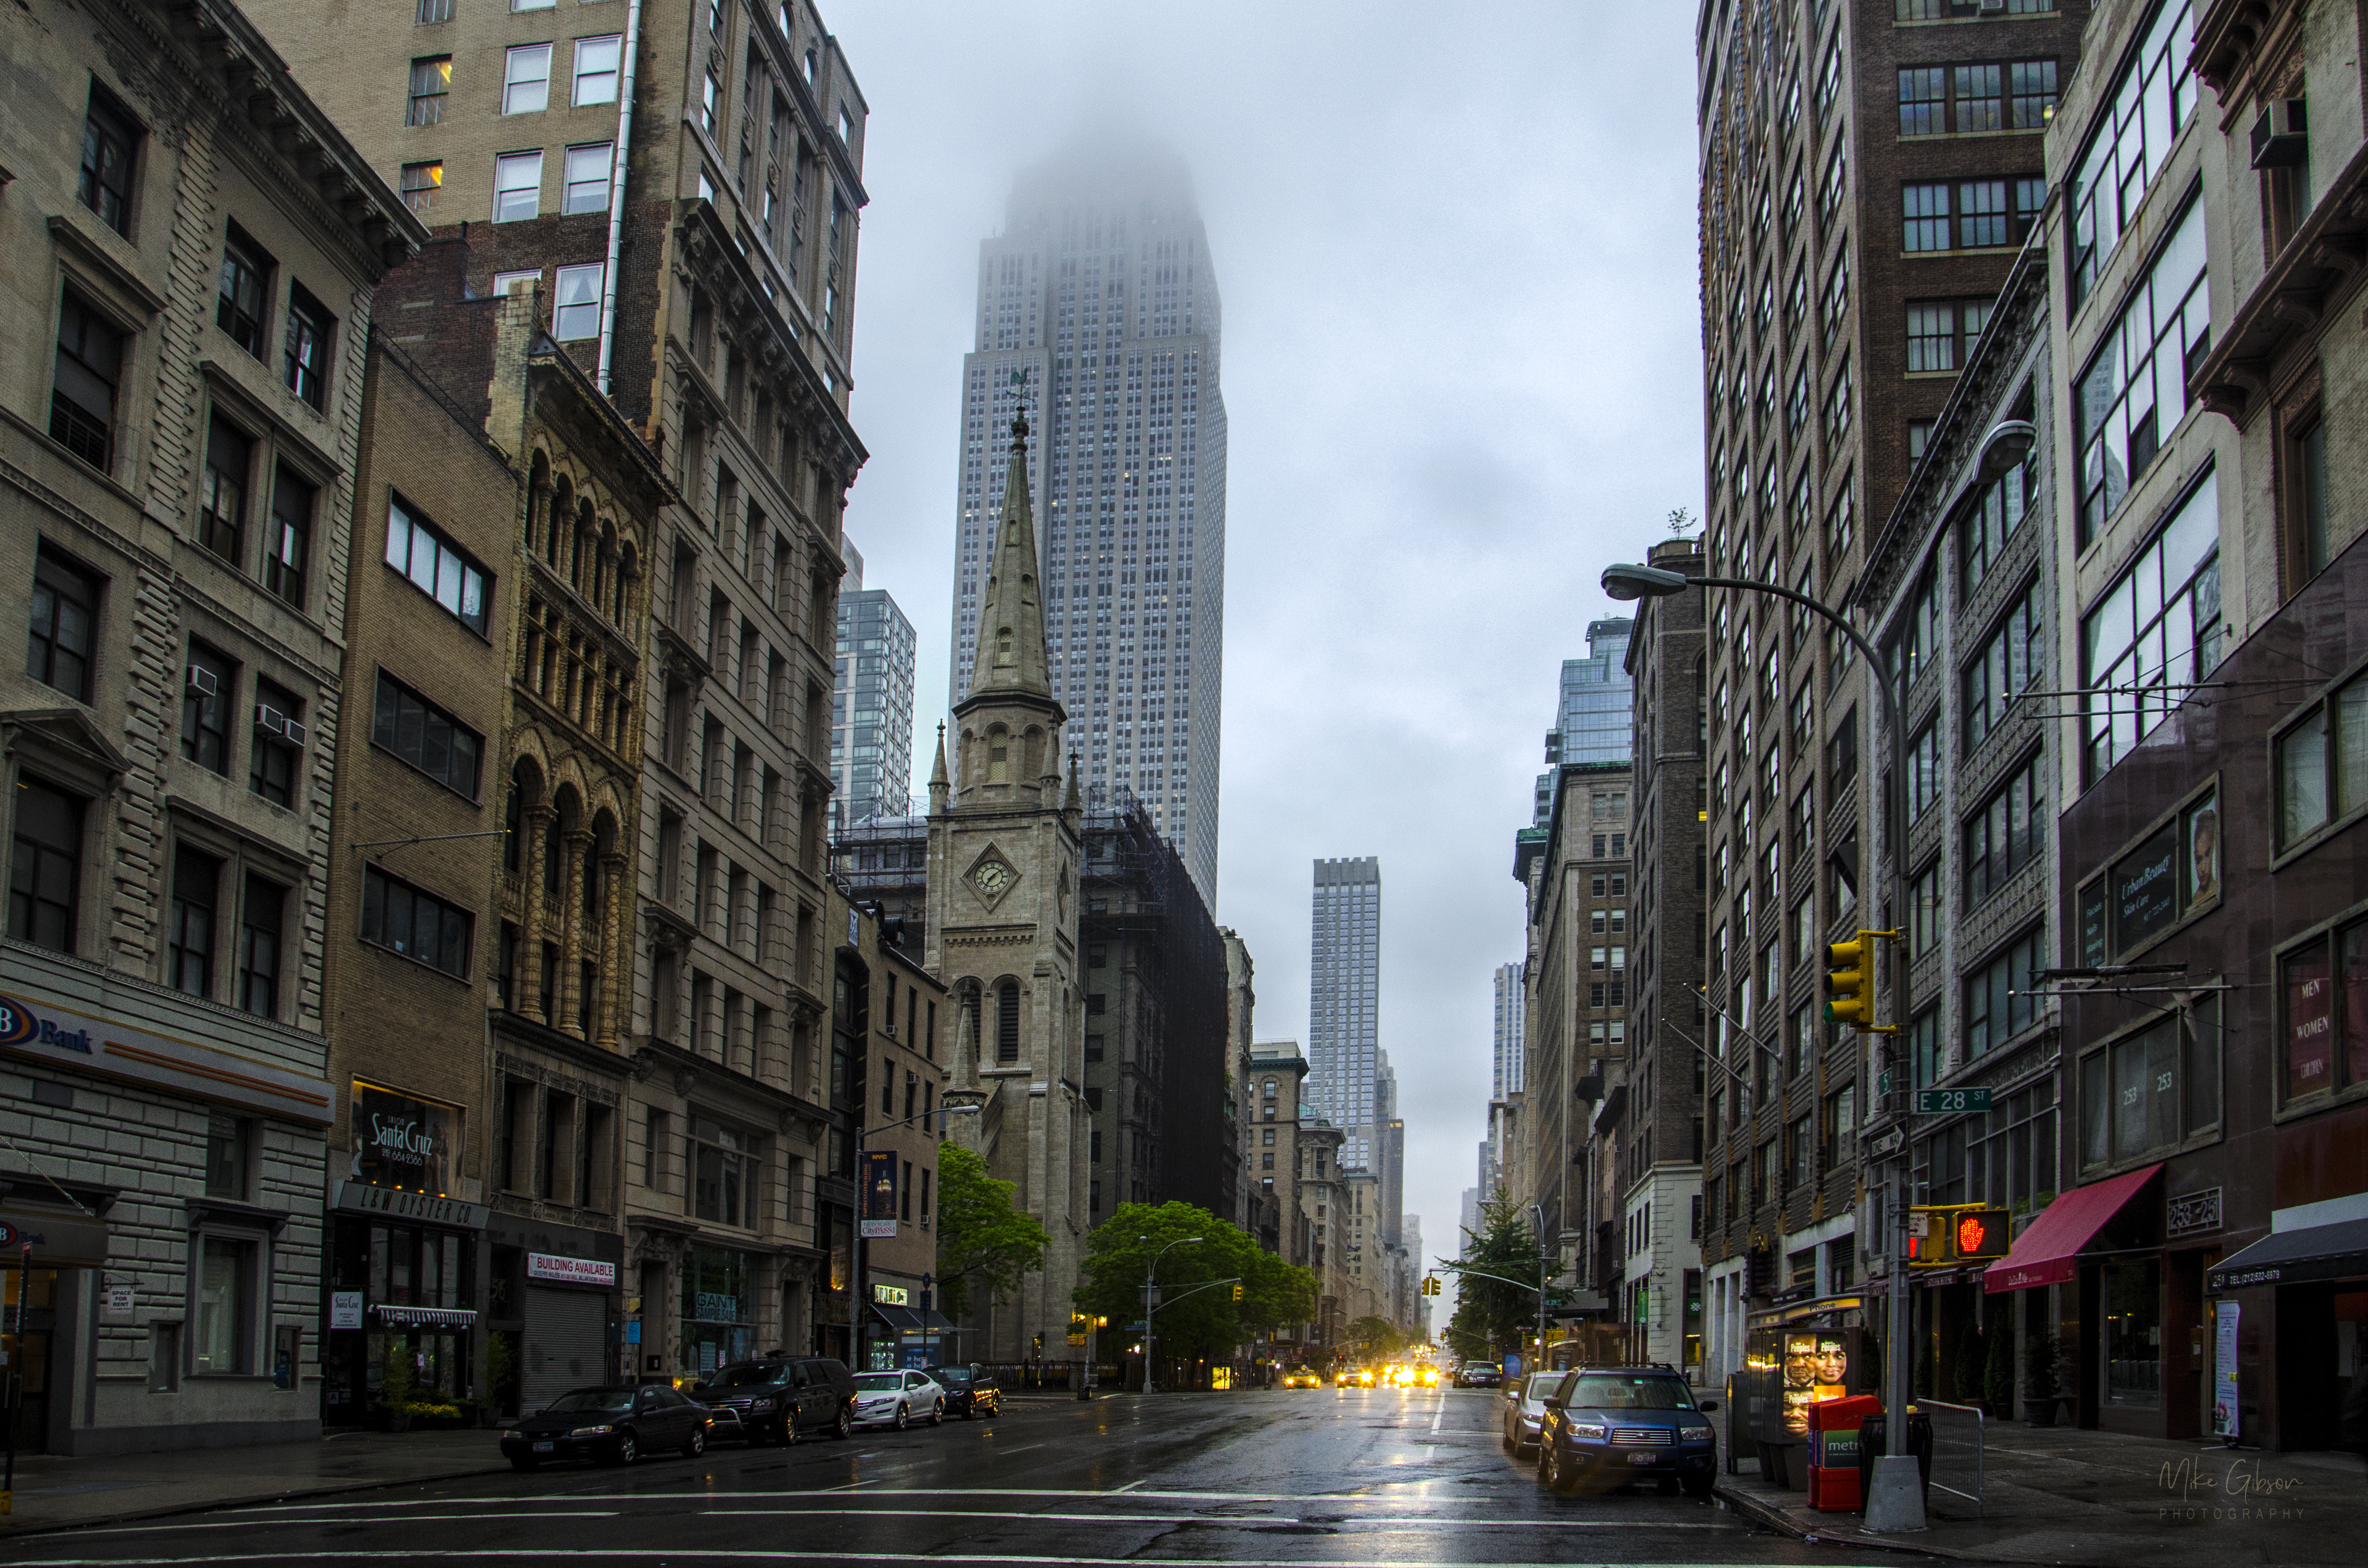 Low cloud over New york